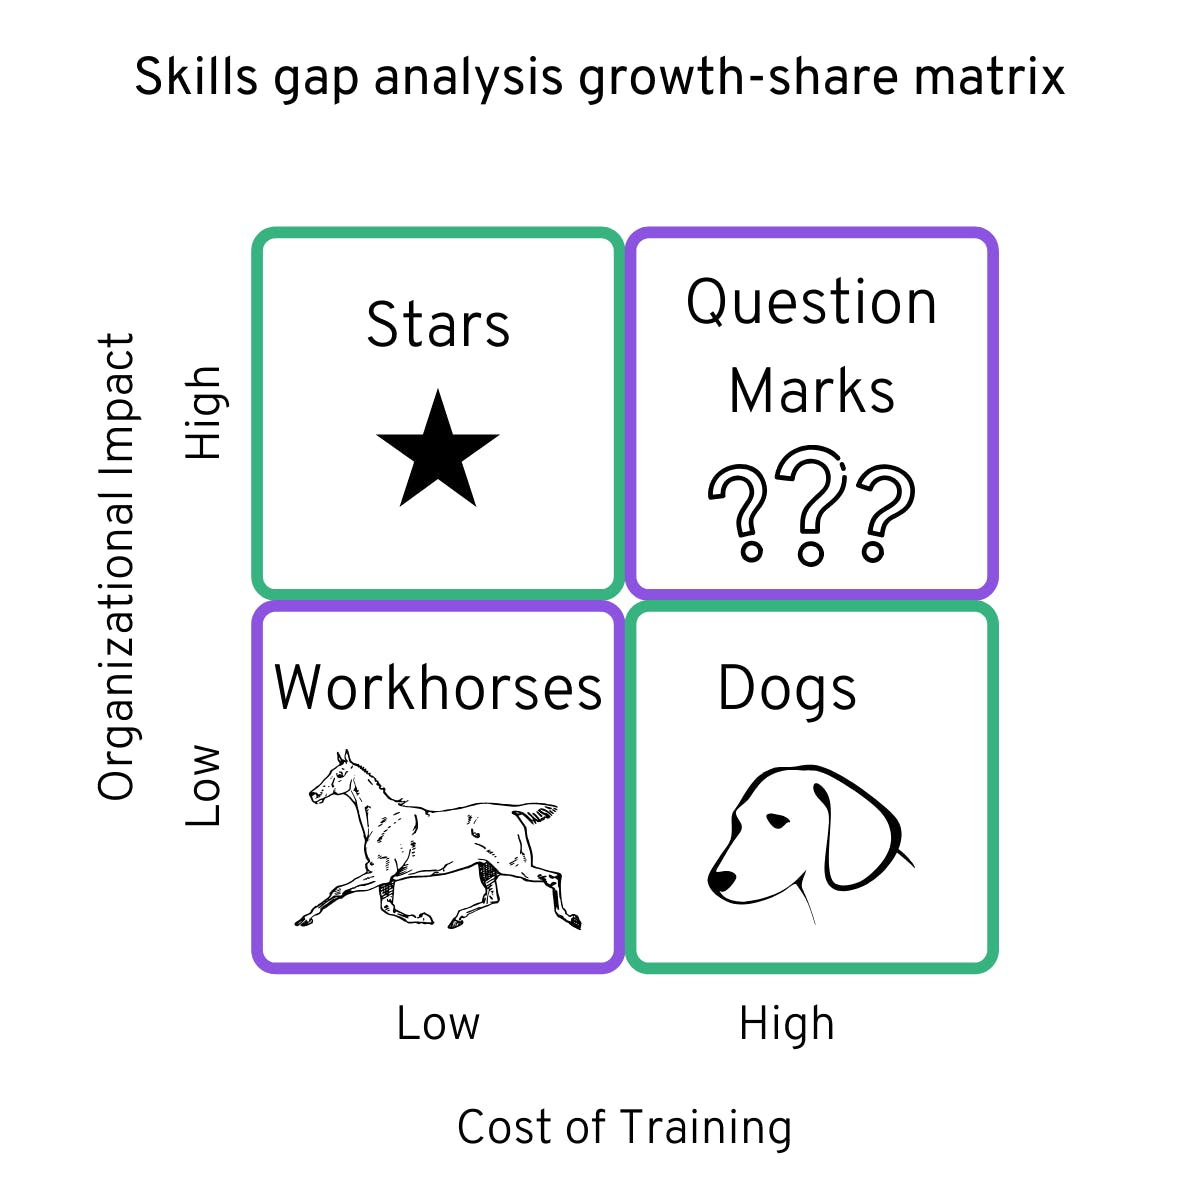 skills gap analysis growth-share matrix